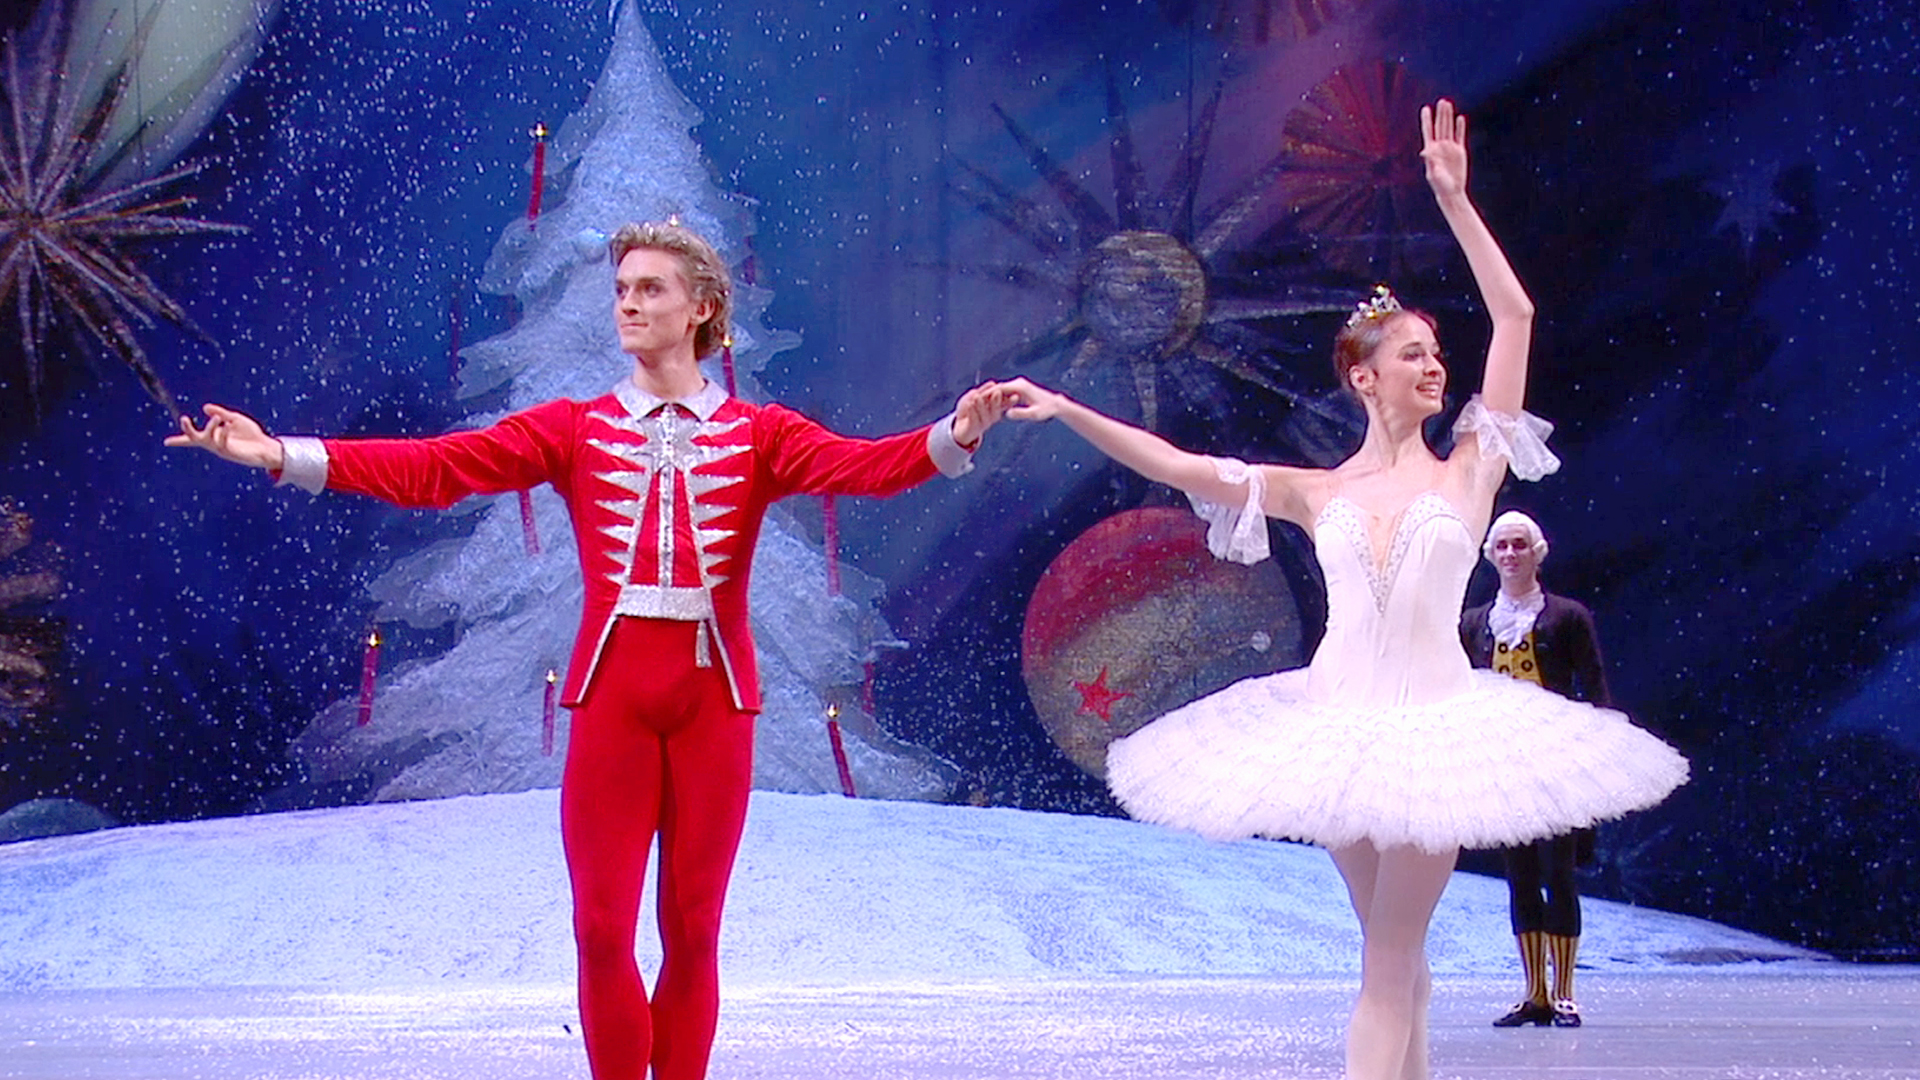 Please Note. Entry to George Balanchine's The Nutcracker® requires a New York City Ballet ticket printed by the David H. Koch Theater. E-tickets, print-at-home tickets, and copies of tickets are not valid and will not be accepted.